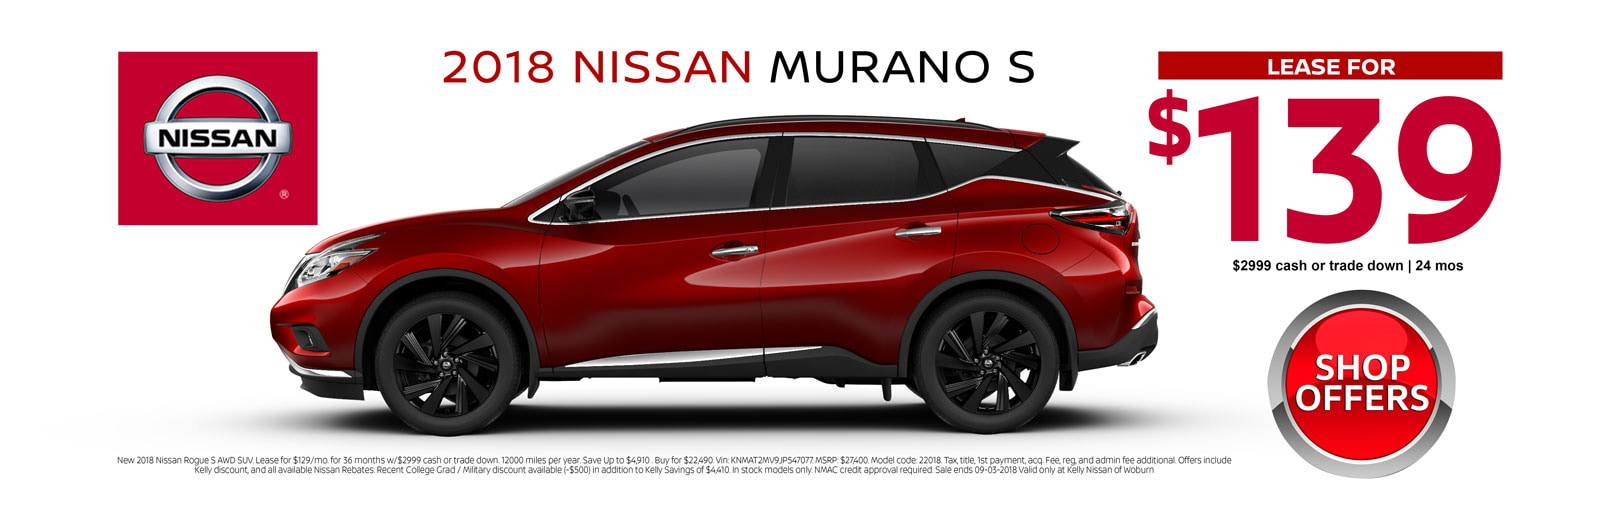 Kelly Nissan New And Used Cars For Sale In Woburn MA